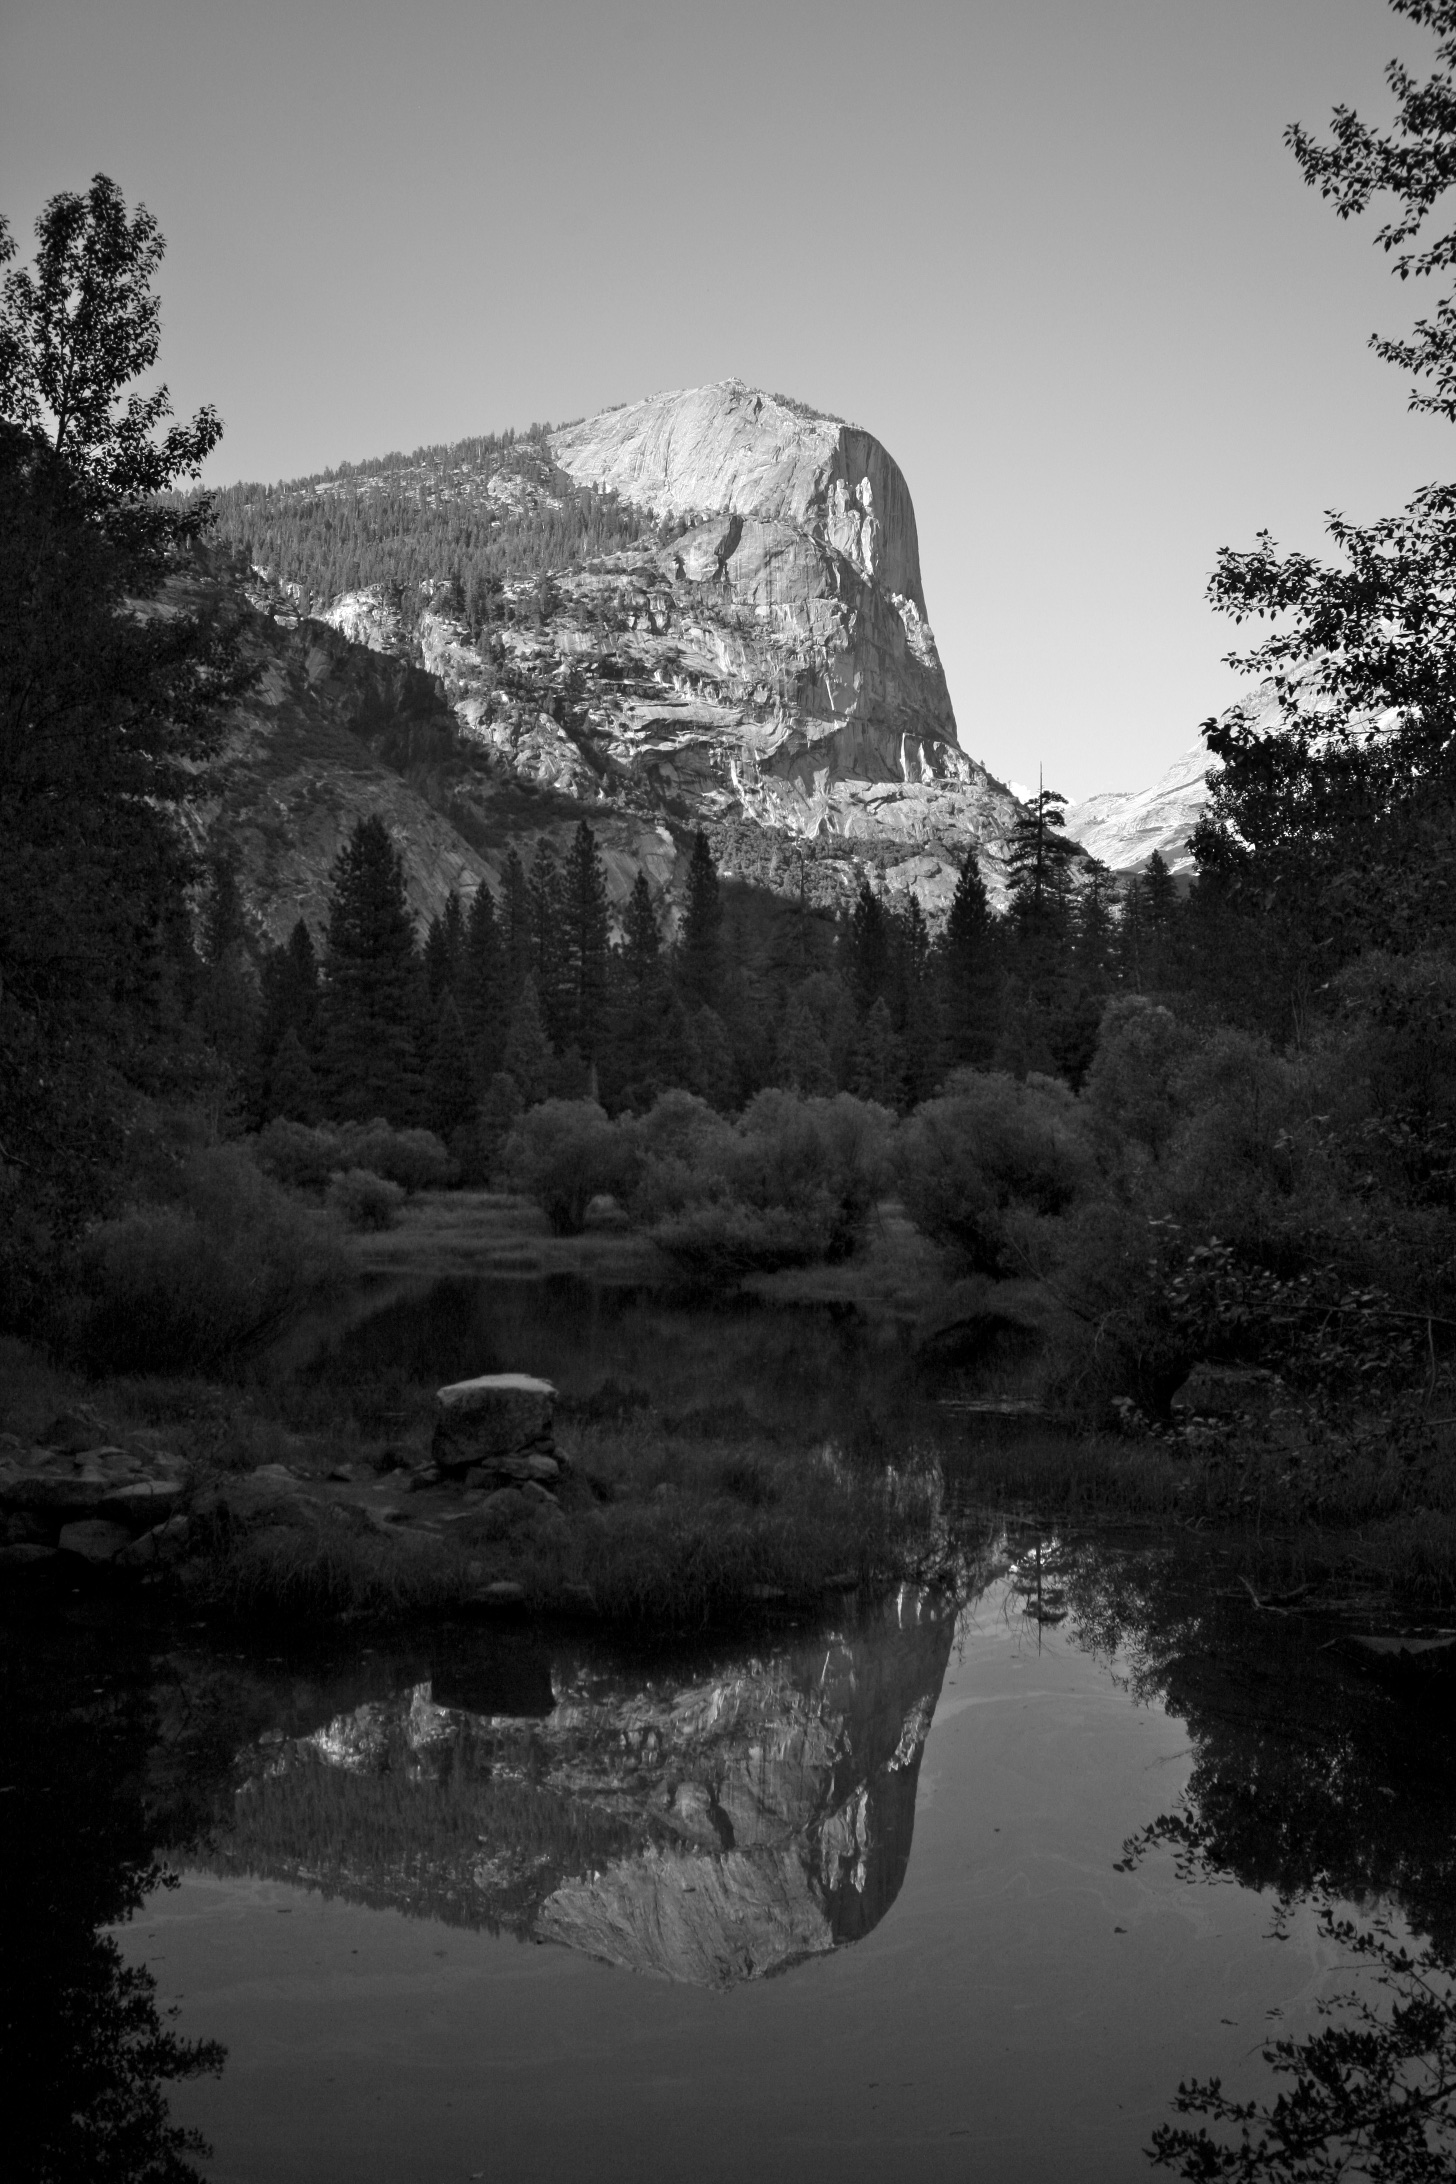 068_YosemiteReflection.jpg